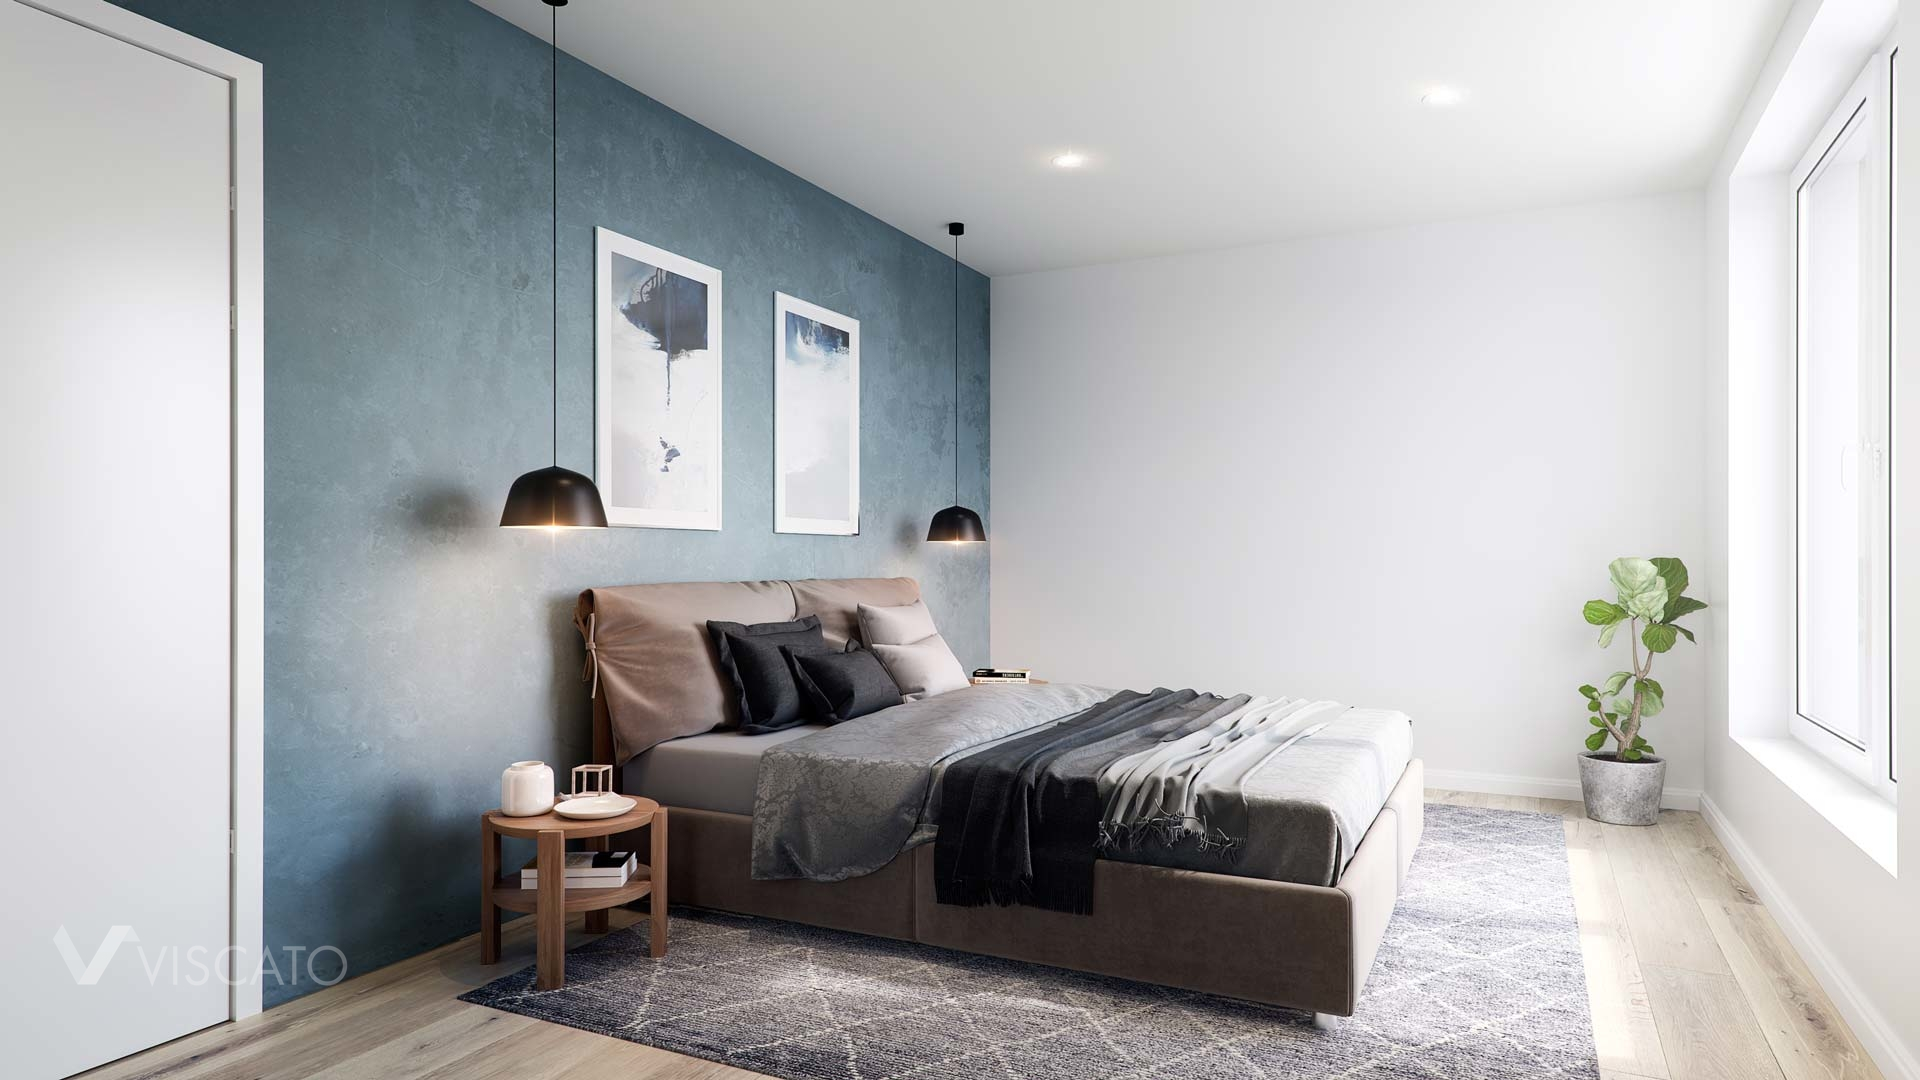 Bedroom in 3D with a brown bed, Viscato